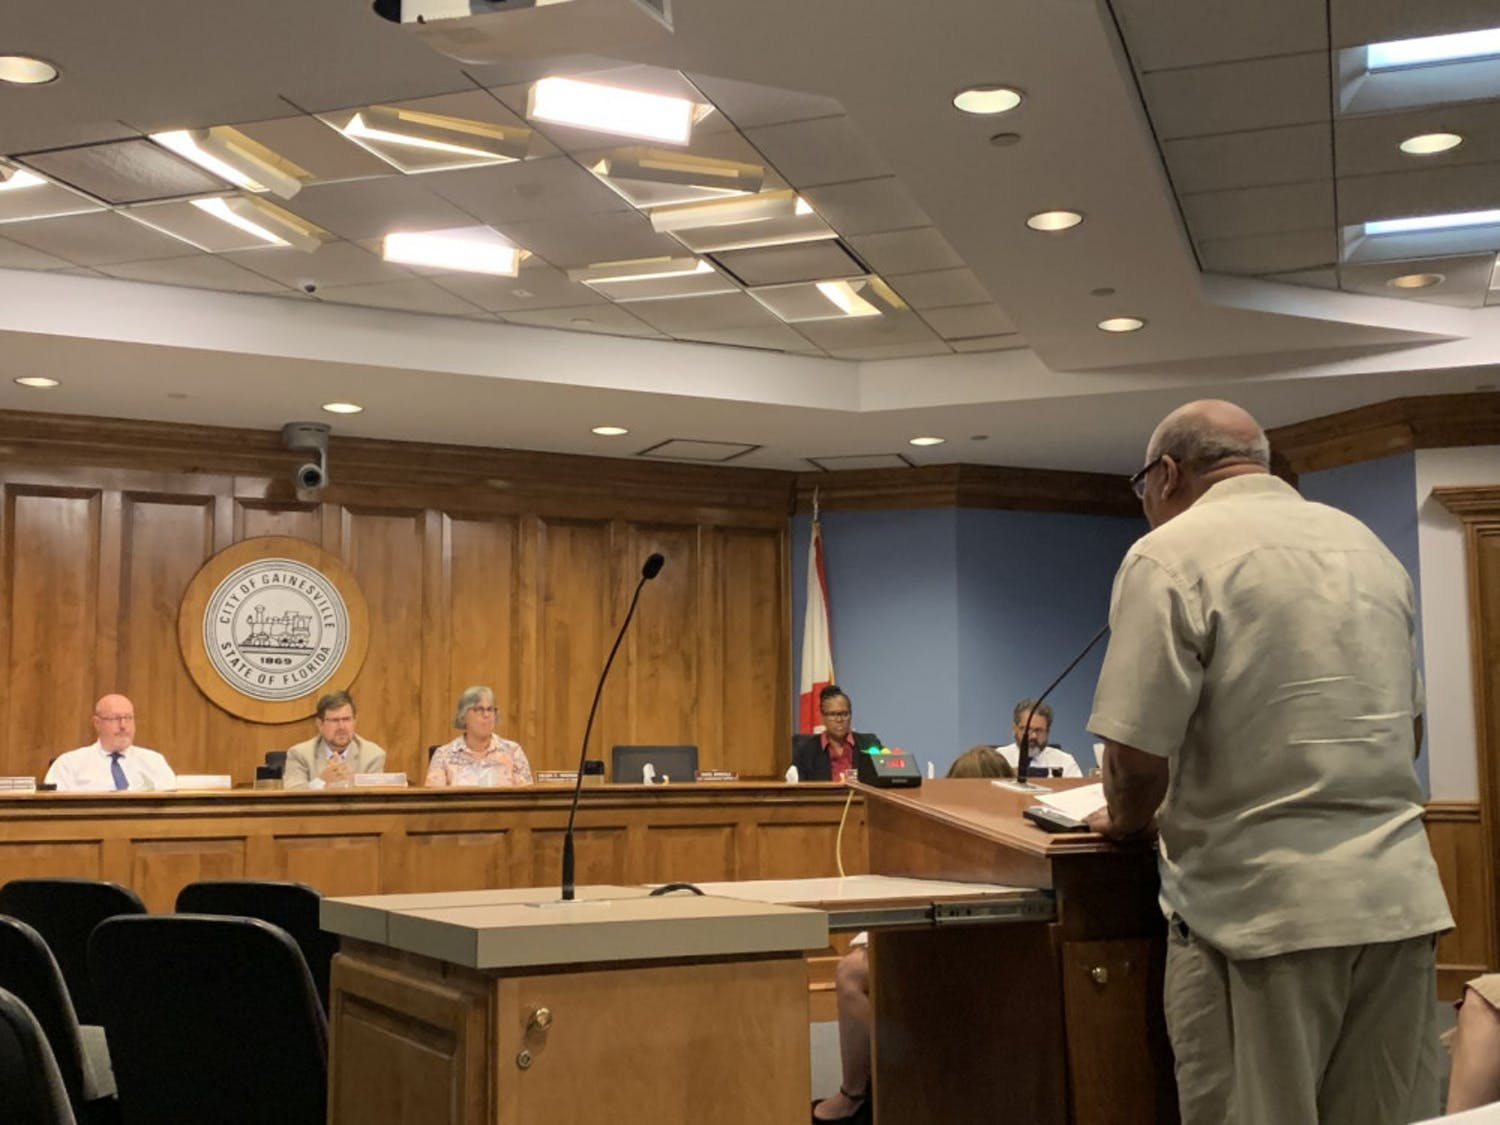 Aaron Green, a 73-year-old Gainesville resident, speaks to the city commission Thursday night about polystyrene cups and containers. Green said the discussions about possibly banning single-use plastics was affecting his business, Fletcher's Cocktail Lounge, which is located at 619 NW 5th Ave.